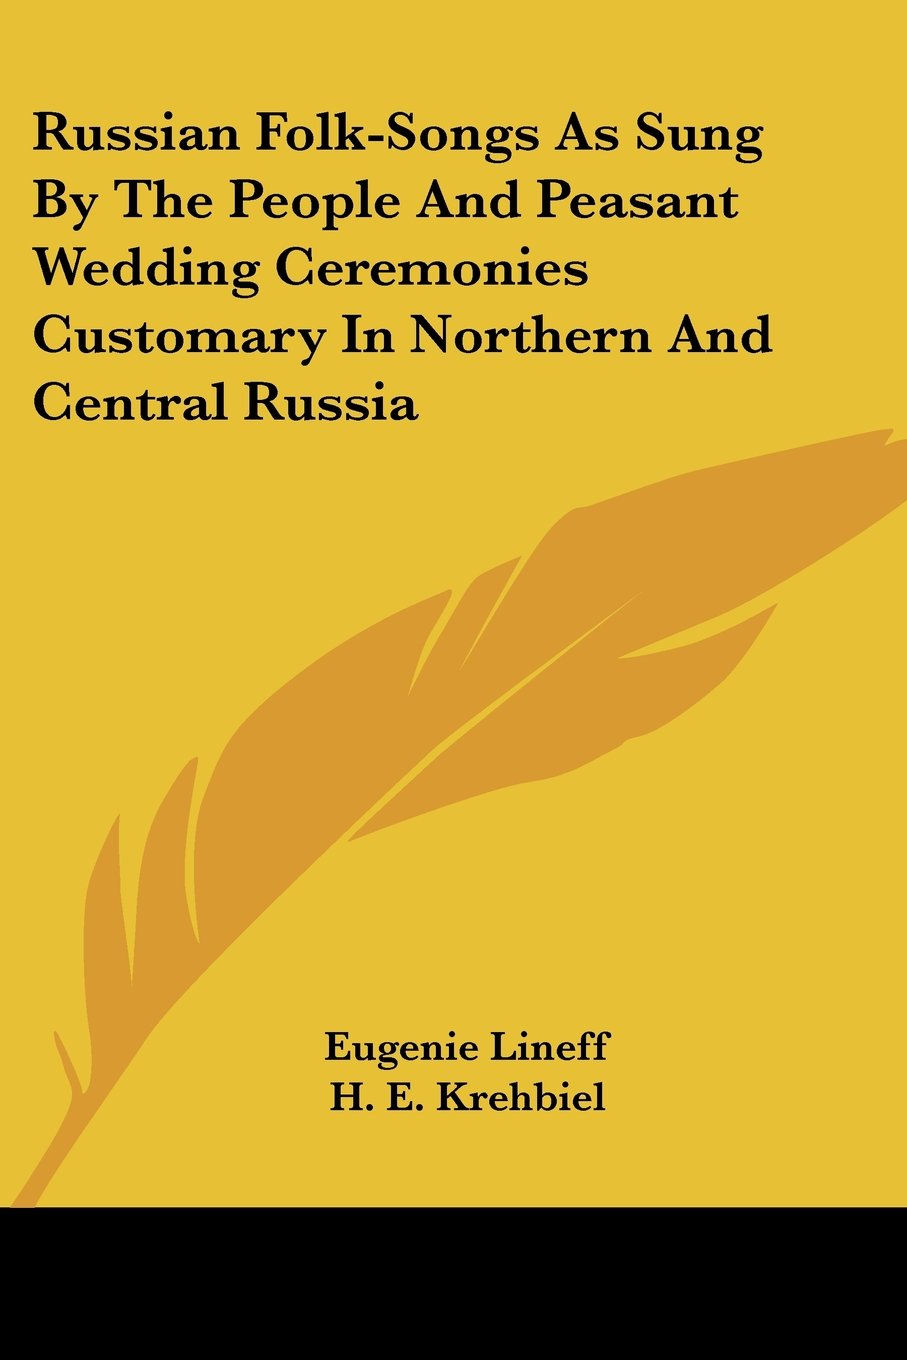 Download Russian Folk-Songs As Sung By The People And Peasant Wedding Ceremonies Customary In Northern And Central Russia pdf